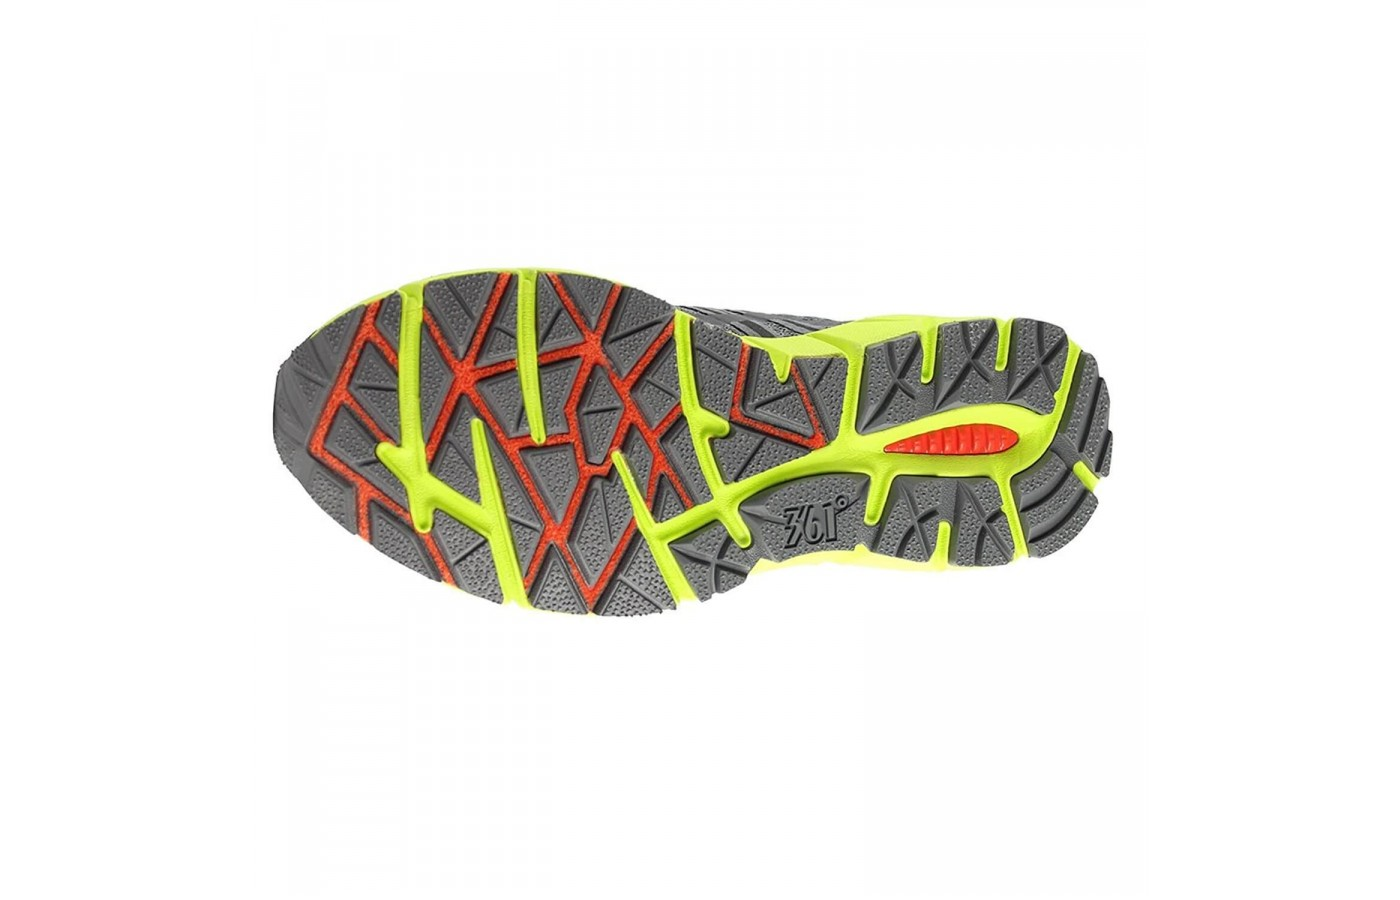 The 361 Ortega 2 doesn't have the same treading or lug placement as other trail running shoes.